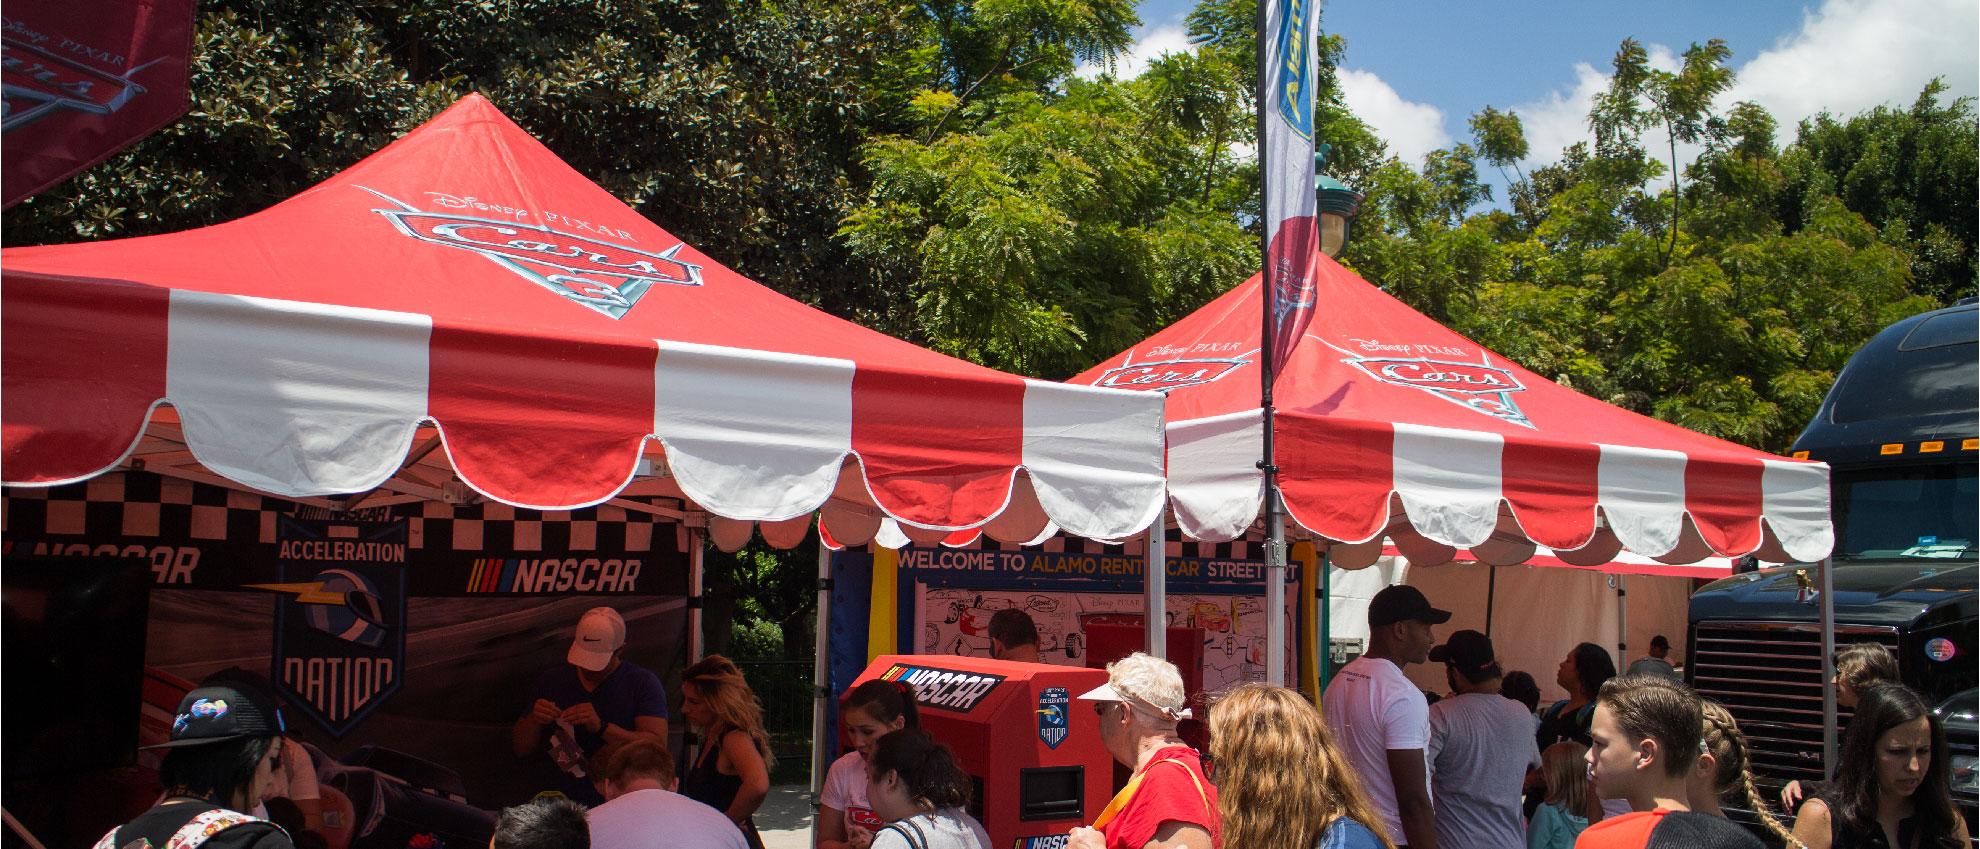 Custom canopies for Disney's Cars 3 installed at a tour where people get to interact and learn more about the upcoming movie